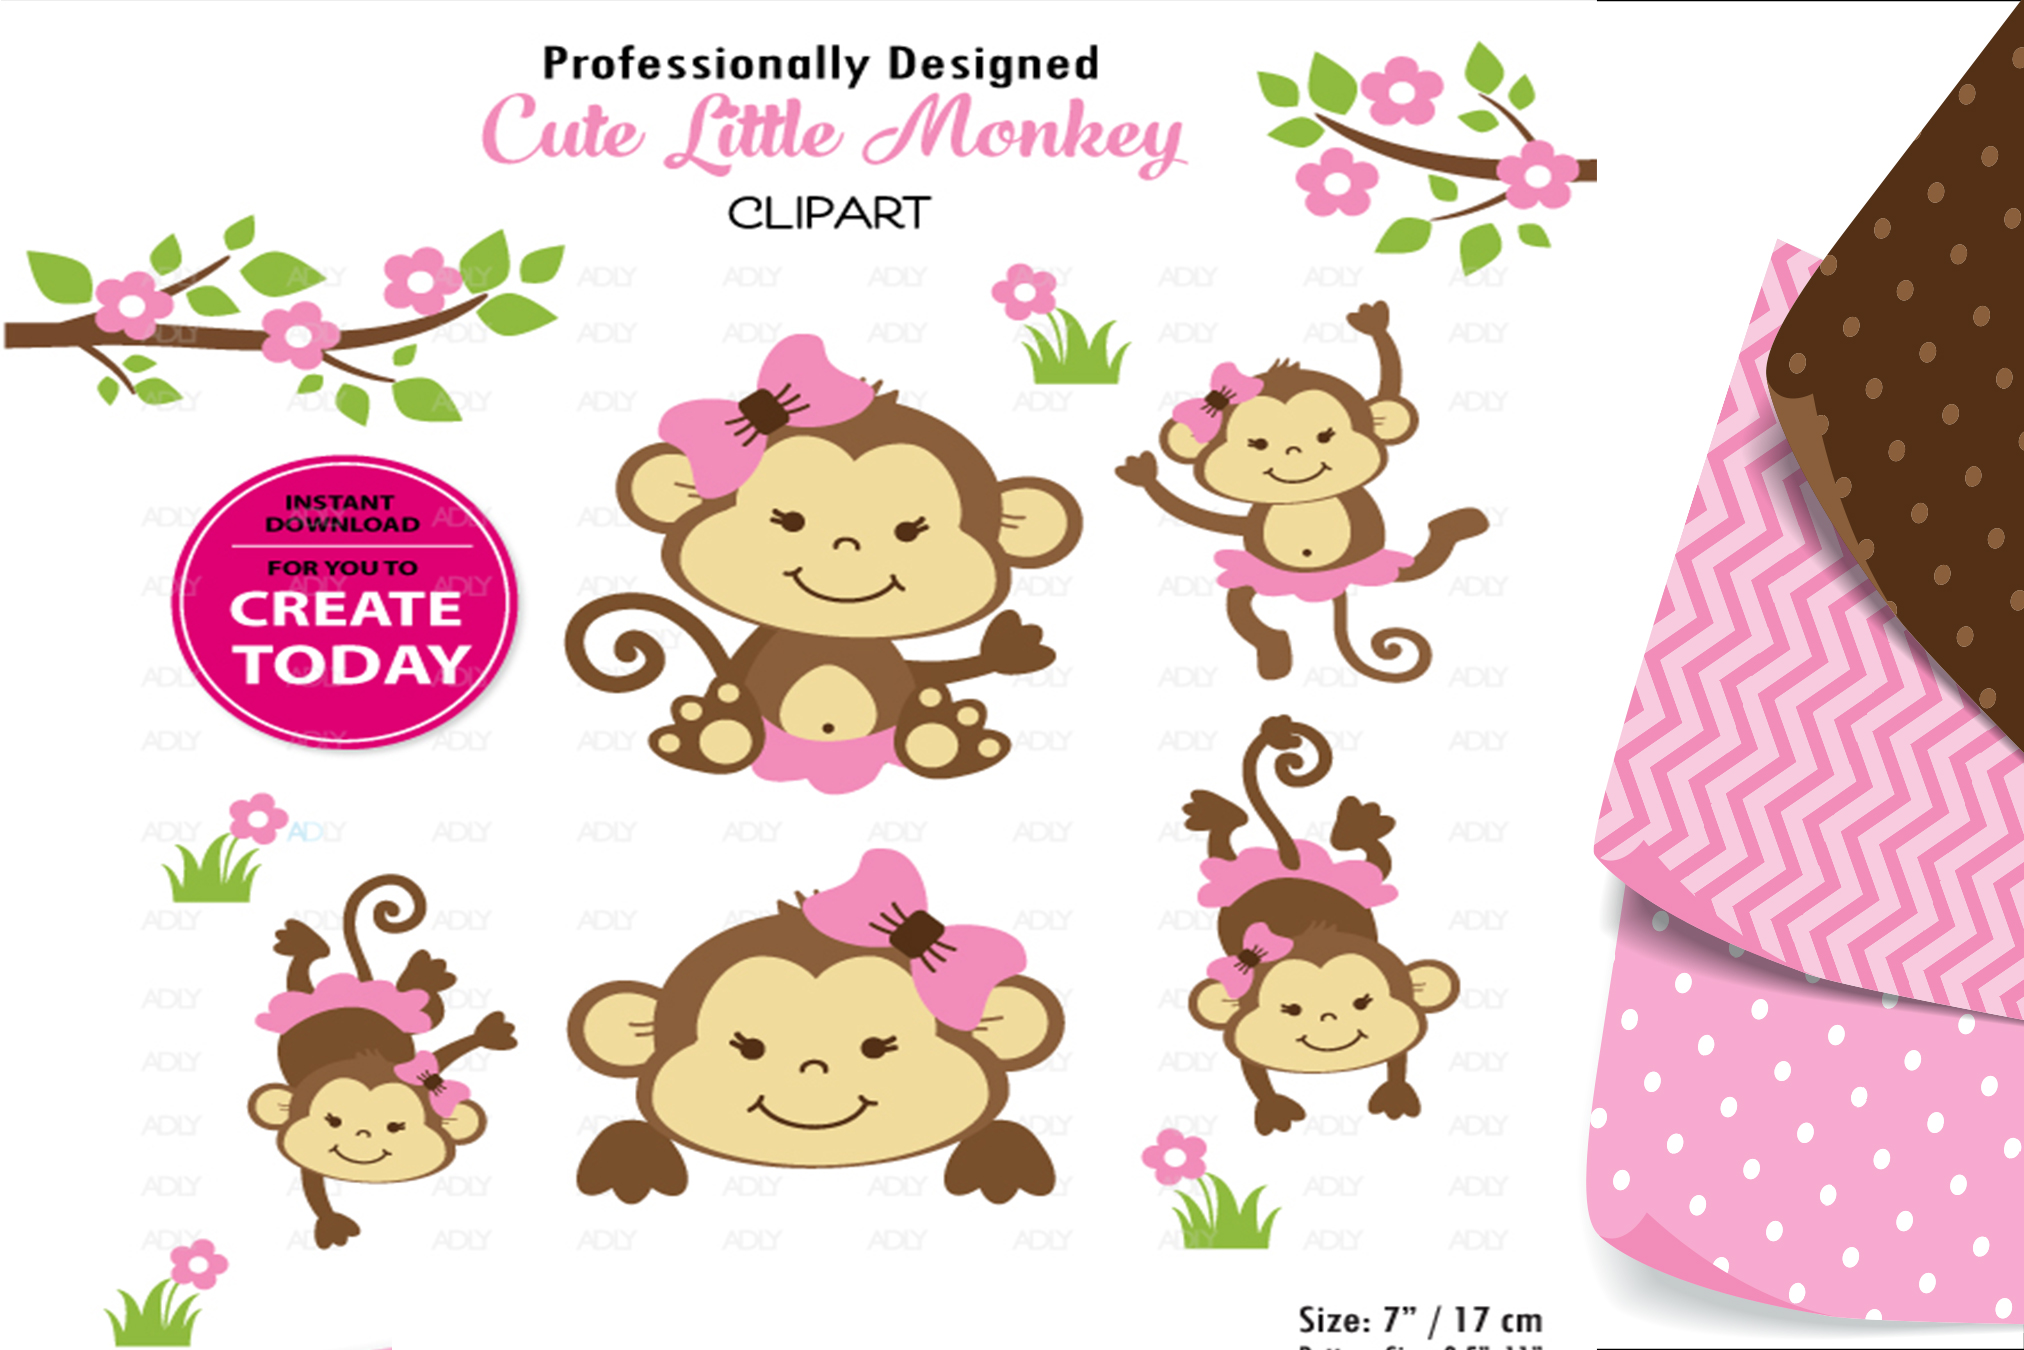 Baby Monkey Girl Sitting Pose with Bow and Flower Clipart example image 1